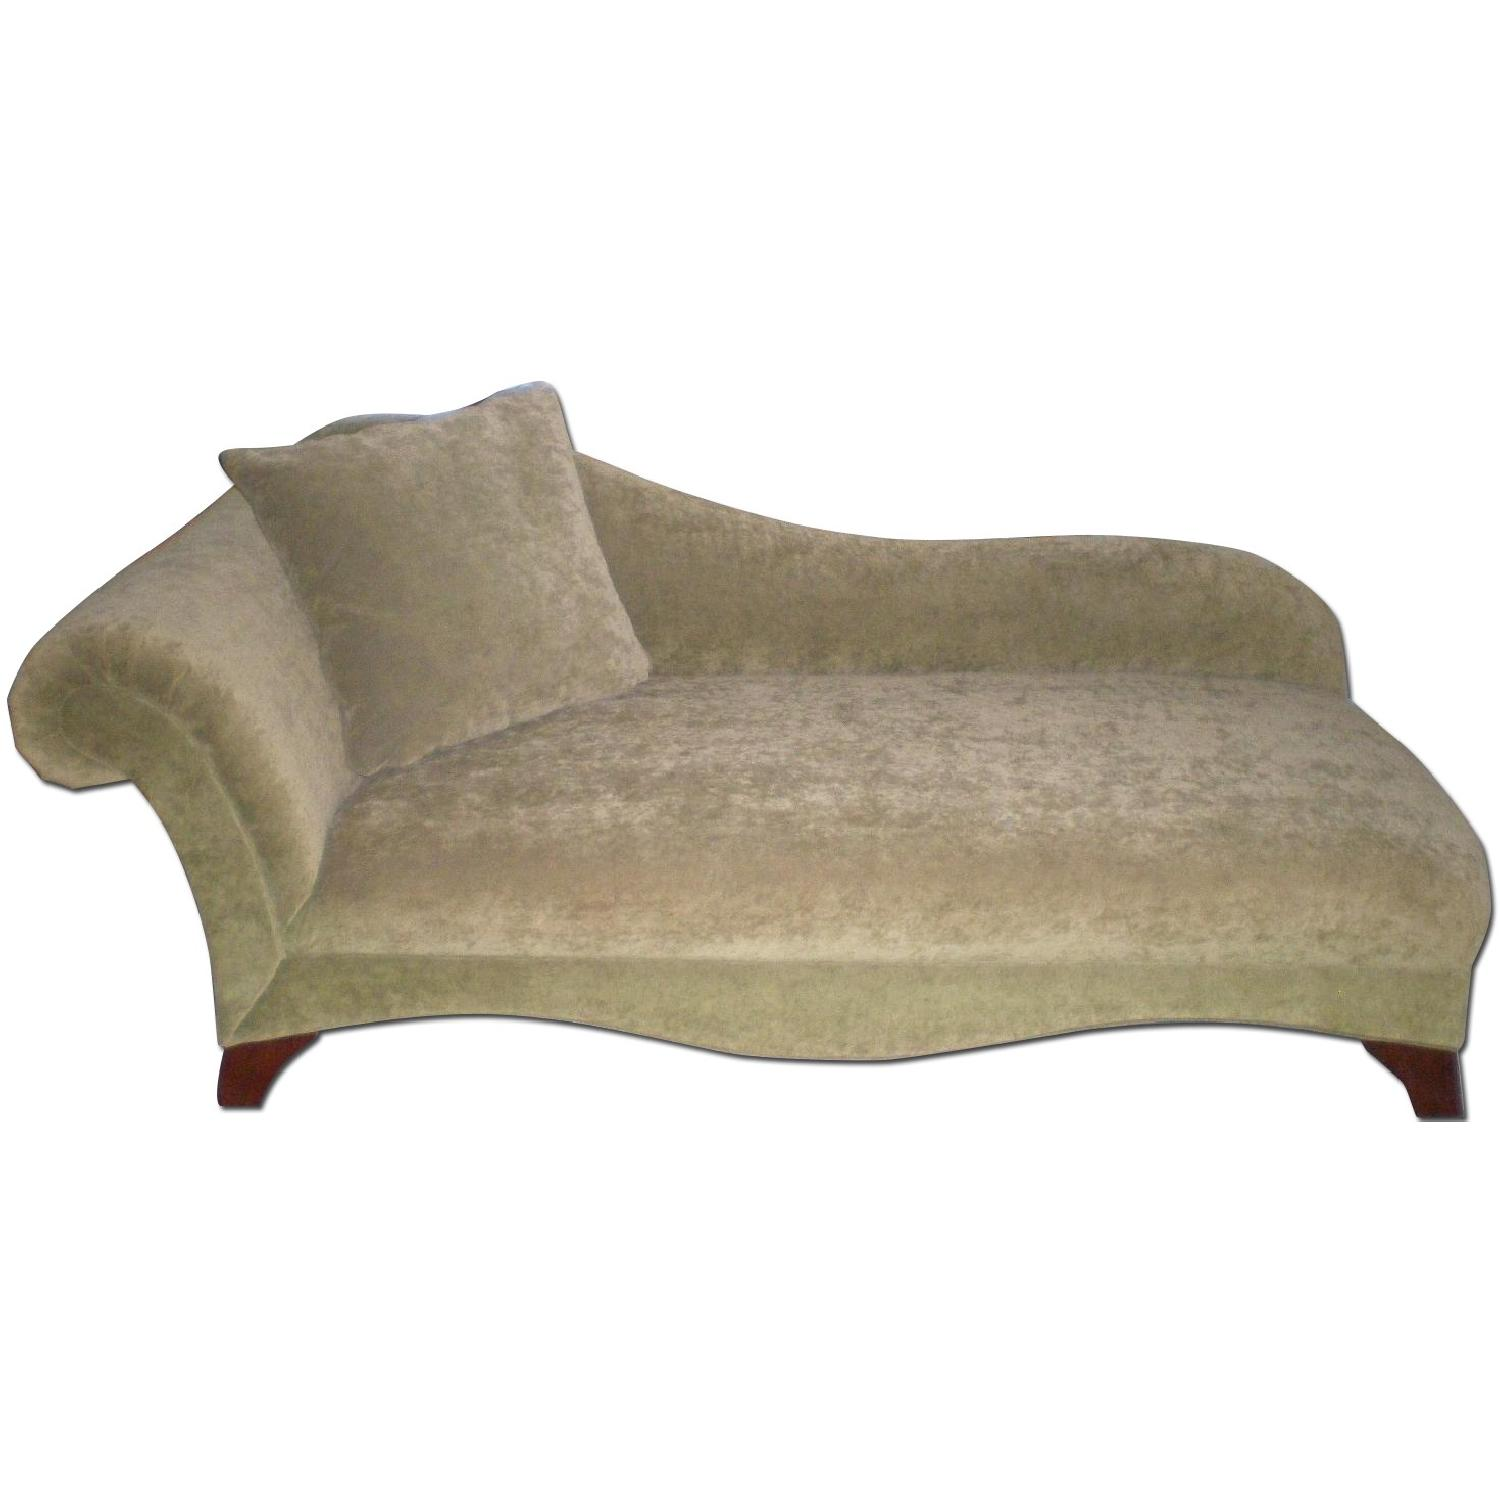 Chaise Lounge with Matching Pillow - image-0